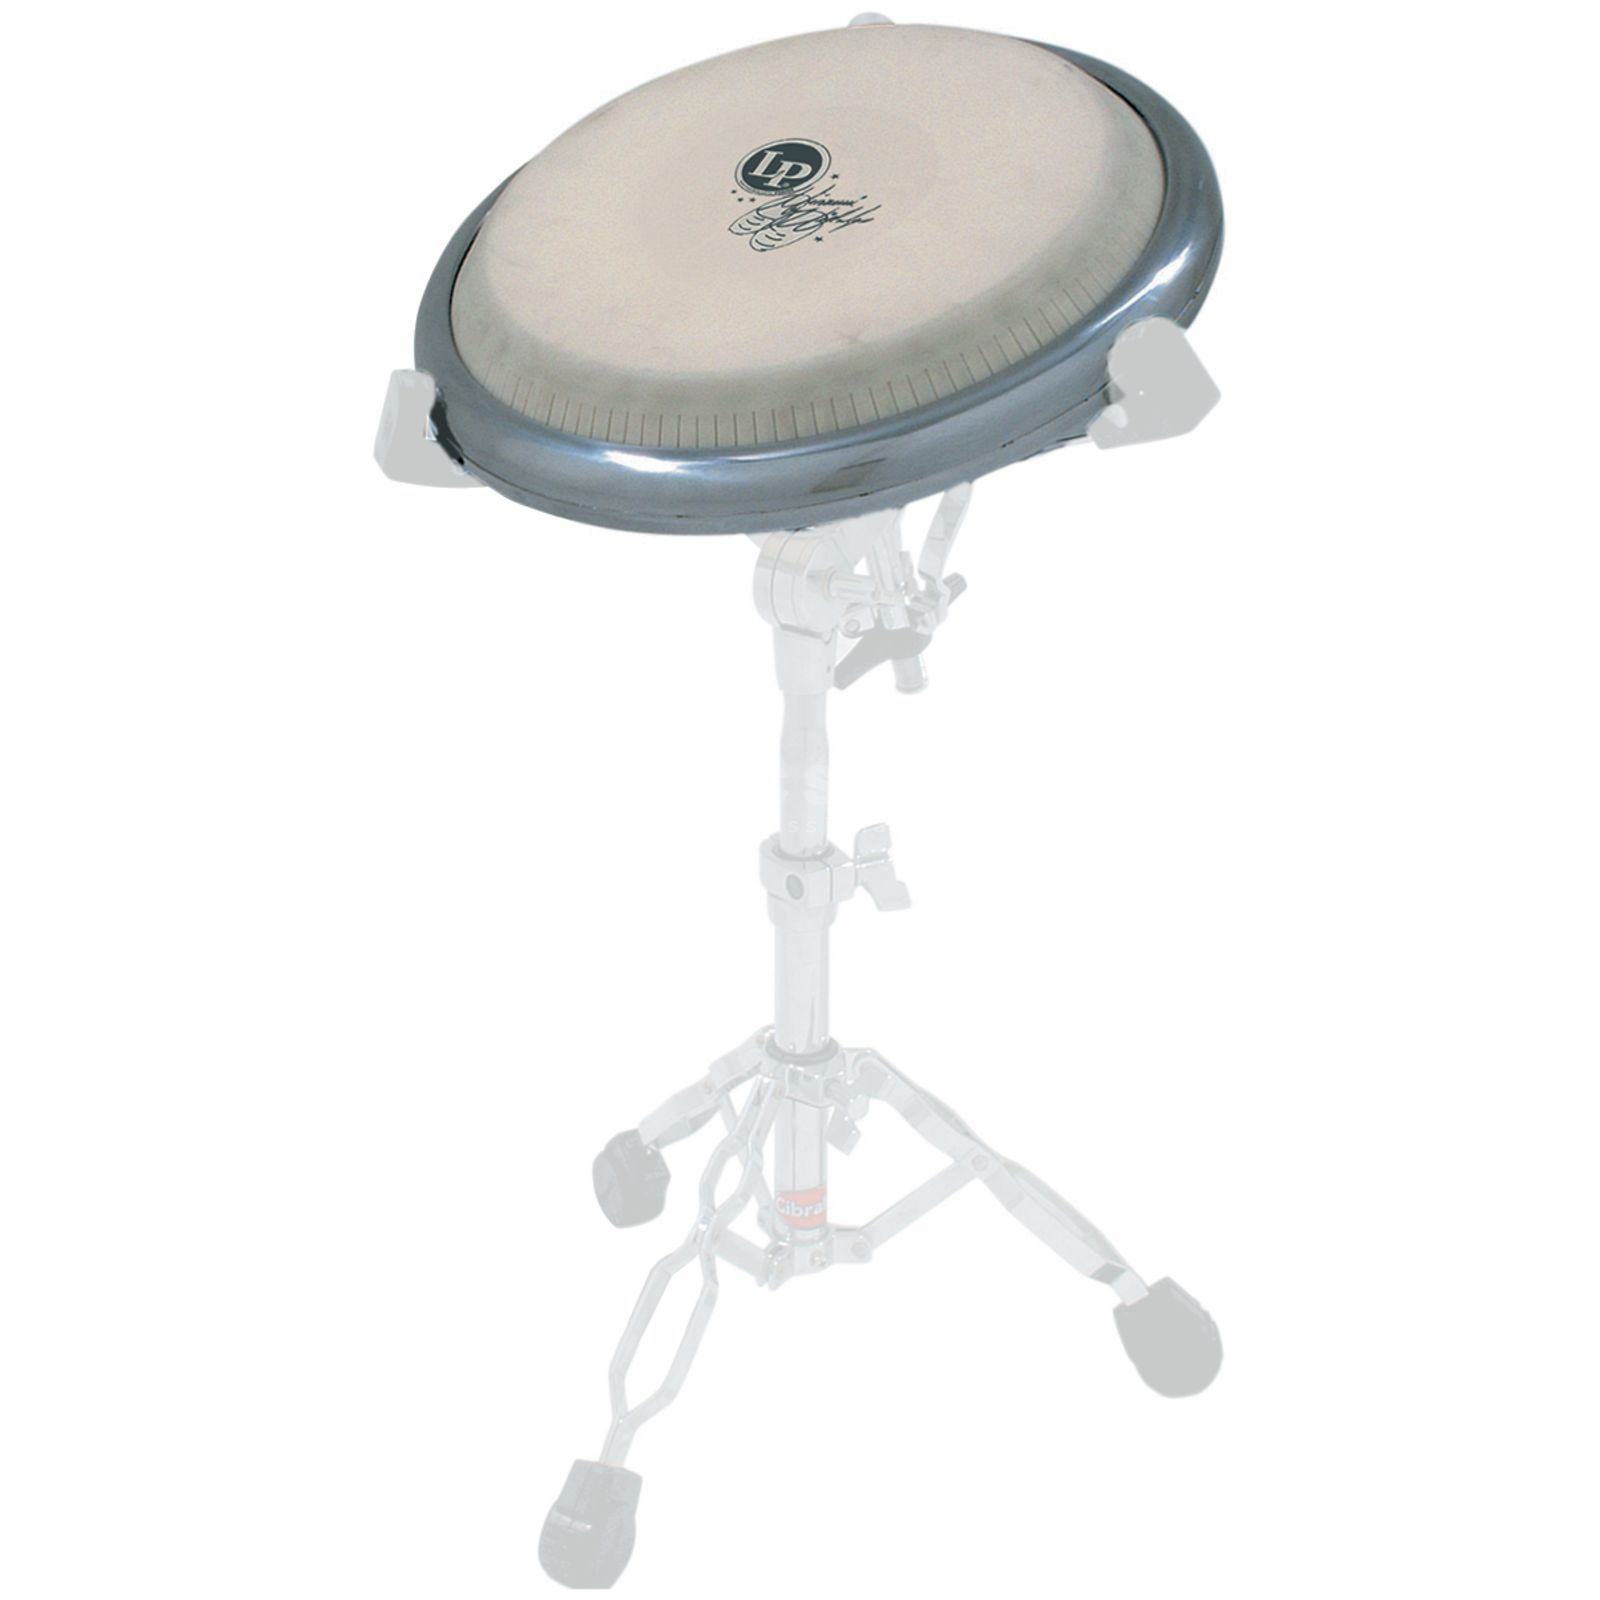 "Latin Percussion Compact Conga LP825, 11"", Giovanni Series Produktbild"